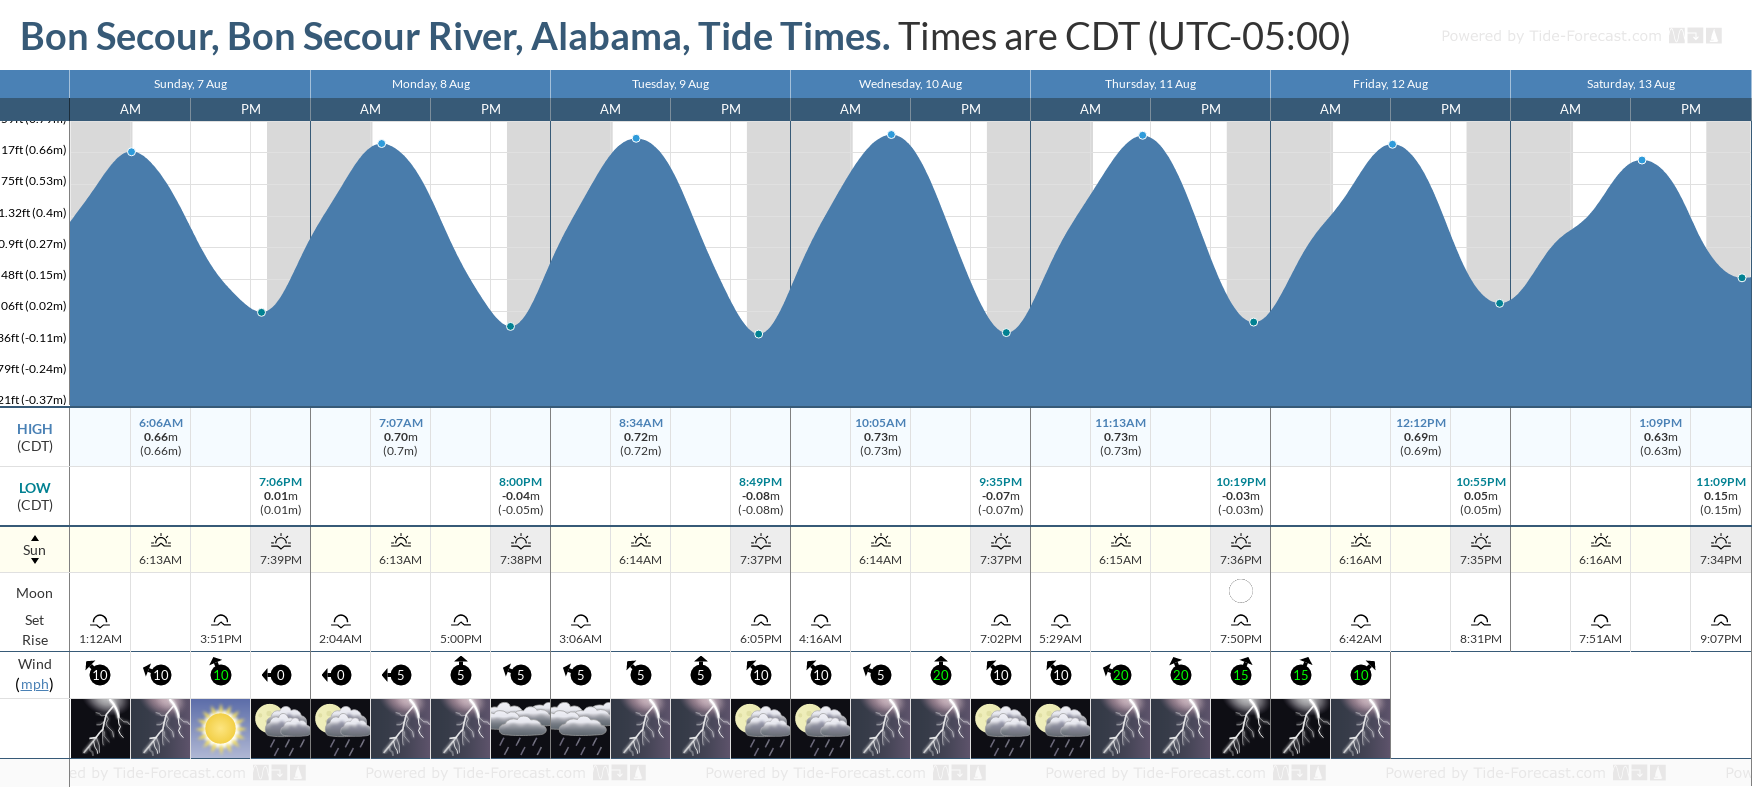 Bon Secour, Bon Secour River, Alabama Tide Chart including high and low tide tide times for the next 7 days